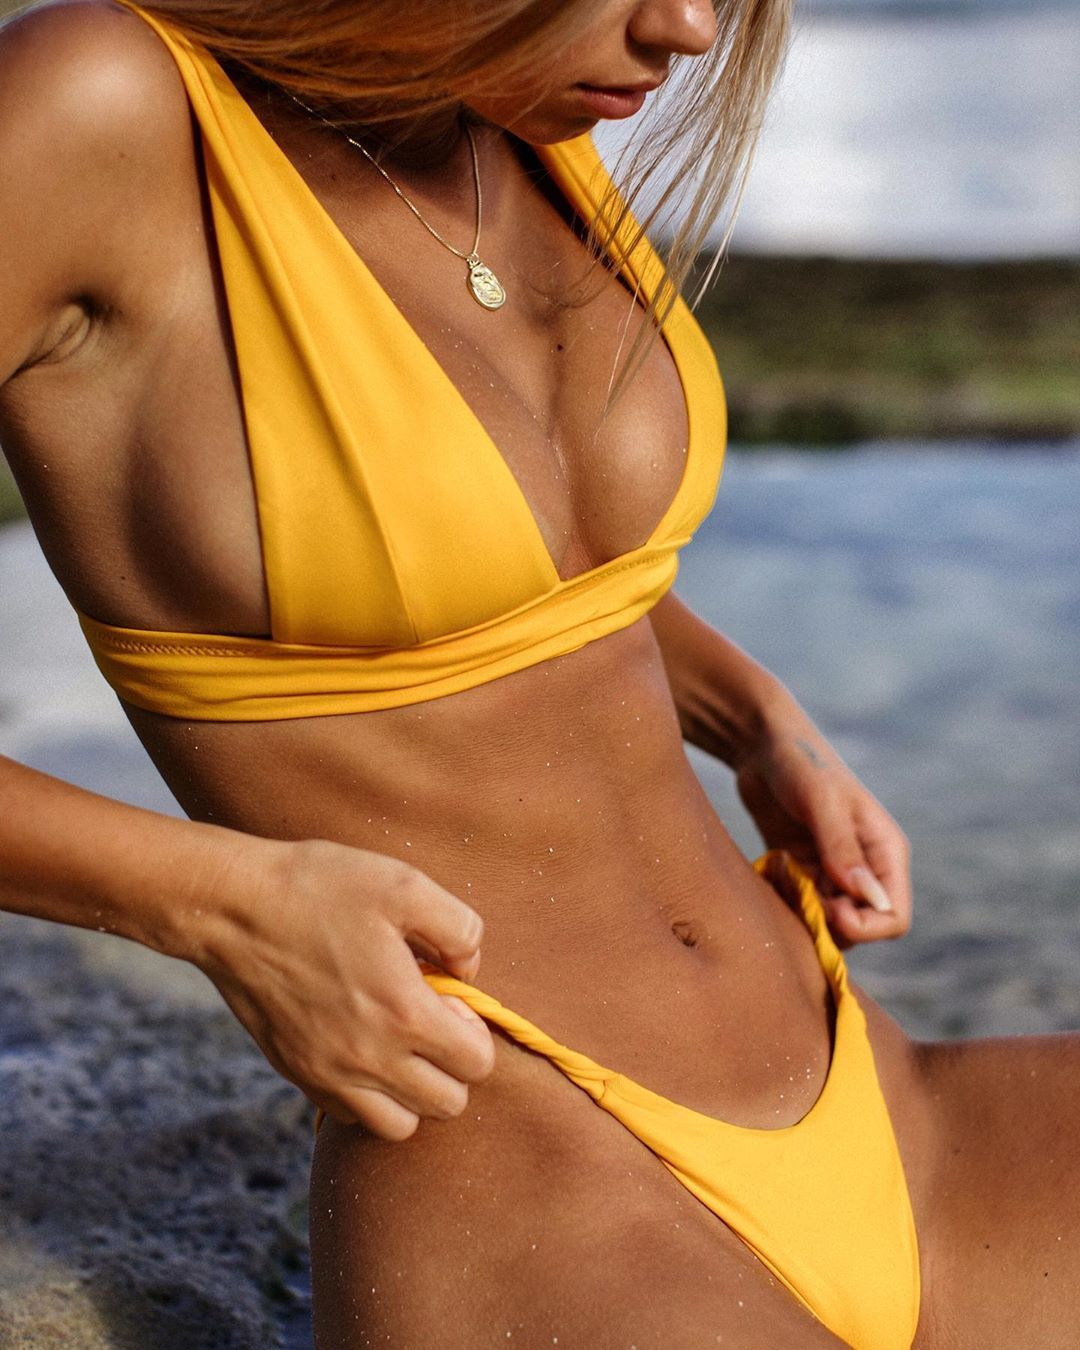 Details 📸 of our SADE TOP 👉 Use code NEED20 for 20€ off #details  #detailed #closeupphotography #closeup #yellowbikini #yello… | Bikinis,  Swimwear, Hypebeast women